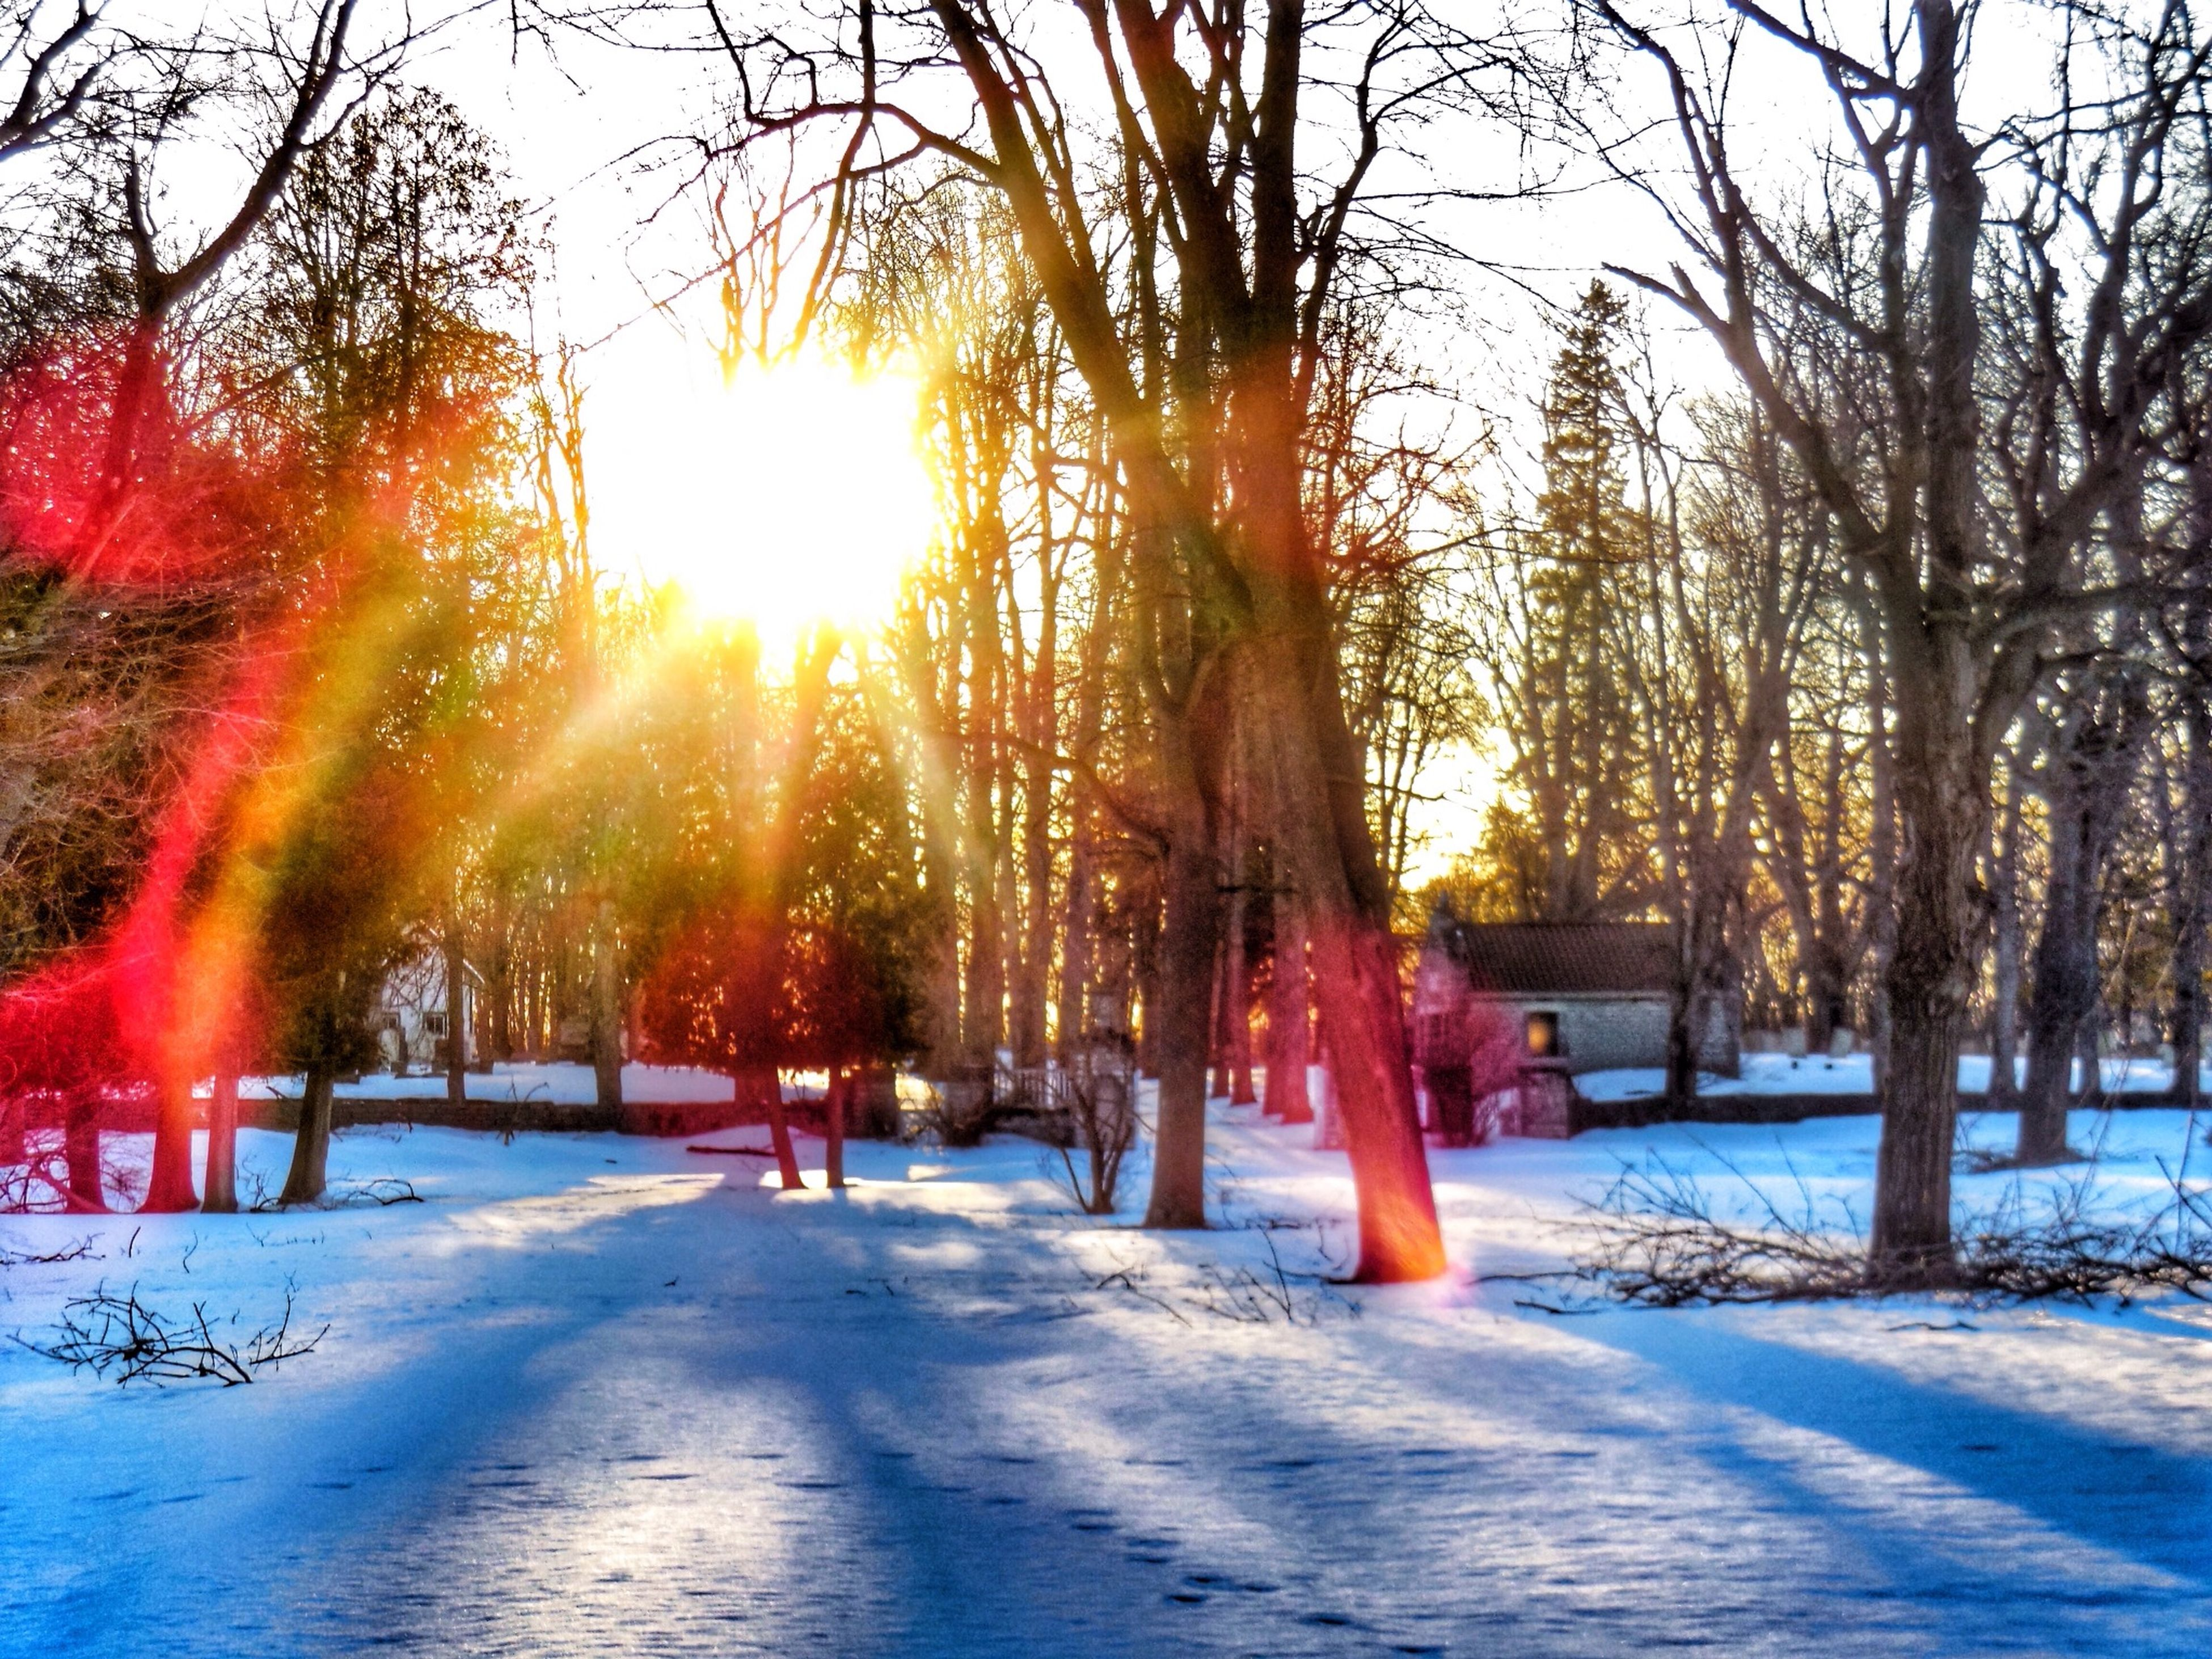 snow, winter, cold temperature, season, tree, weather, sun, covering, nature, sunlight, tree trunk, treelined, frozen, sunset, beauty in nature, the way forward, tranquility, tranquil scene, orange color, road